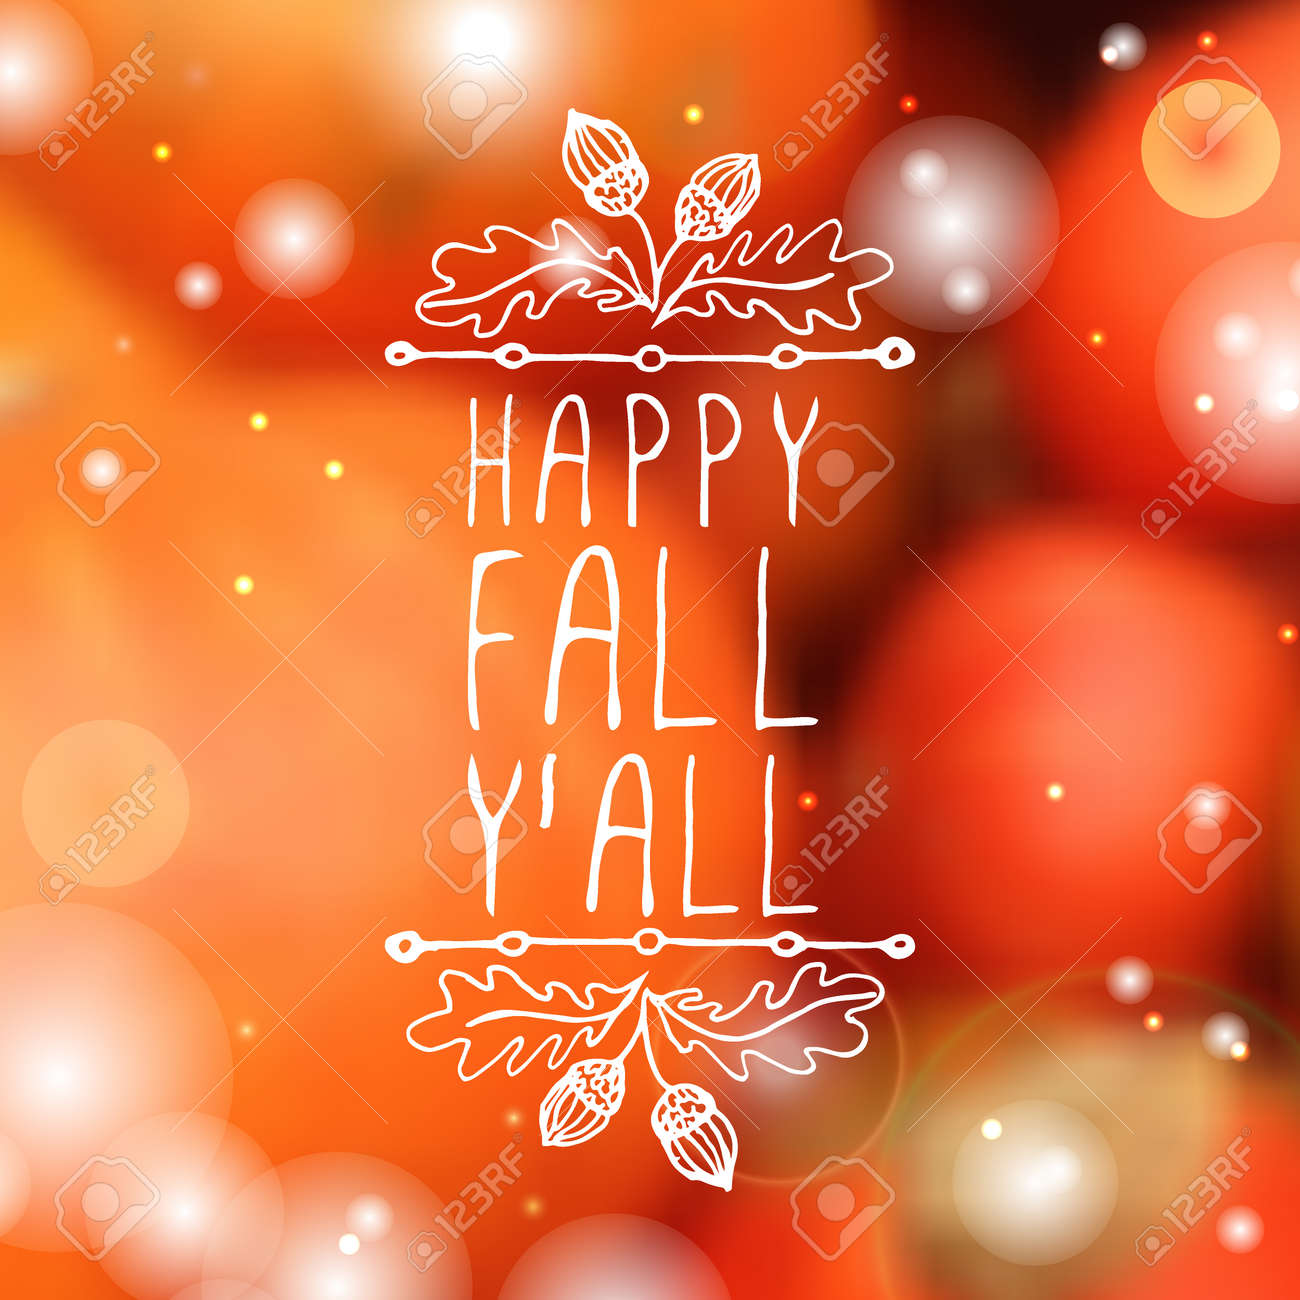 Happy Fall Y All Hand Sketched Typographic Element With Acorns Royalty Free Cliparts Vectors And Stock Illustration Image 46550818